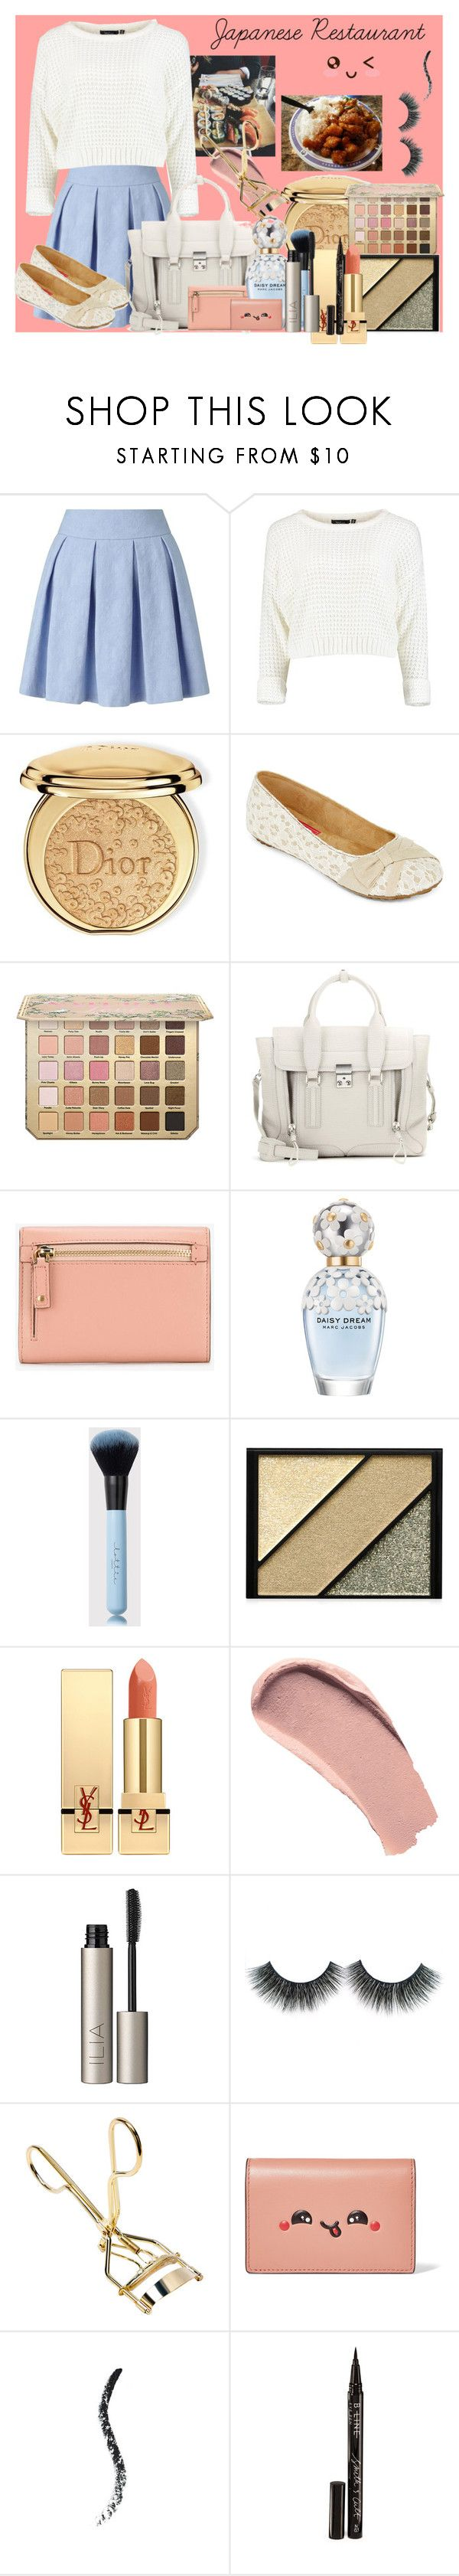 """Japanese Restaurant"" by pocketfullofglitter ❤ liked on Polyvore featuring GET LOST, Miss Selfridge, Christian Dior, POP, 3.1 Phillip Lim, Anya Hindmarch, Marc Jacobs, Elizabeth Arden, Yves Saint Laurent and Burberry"